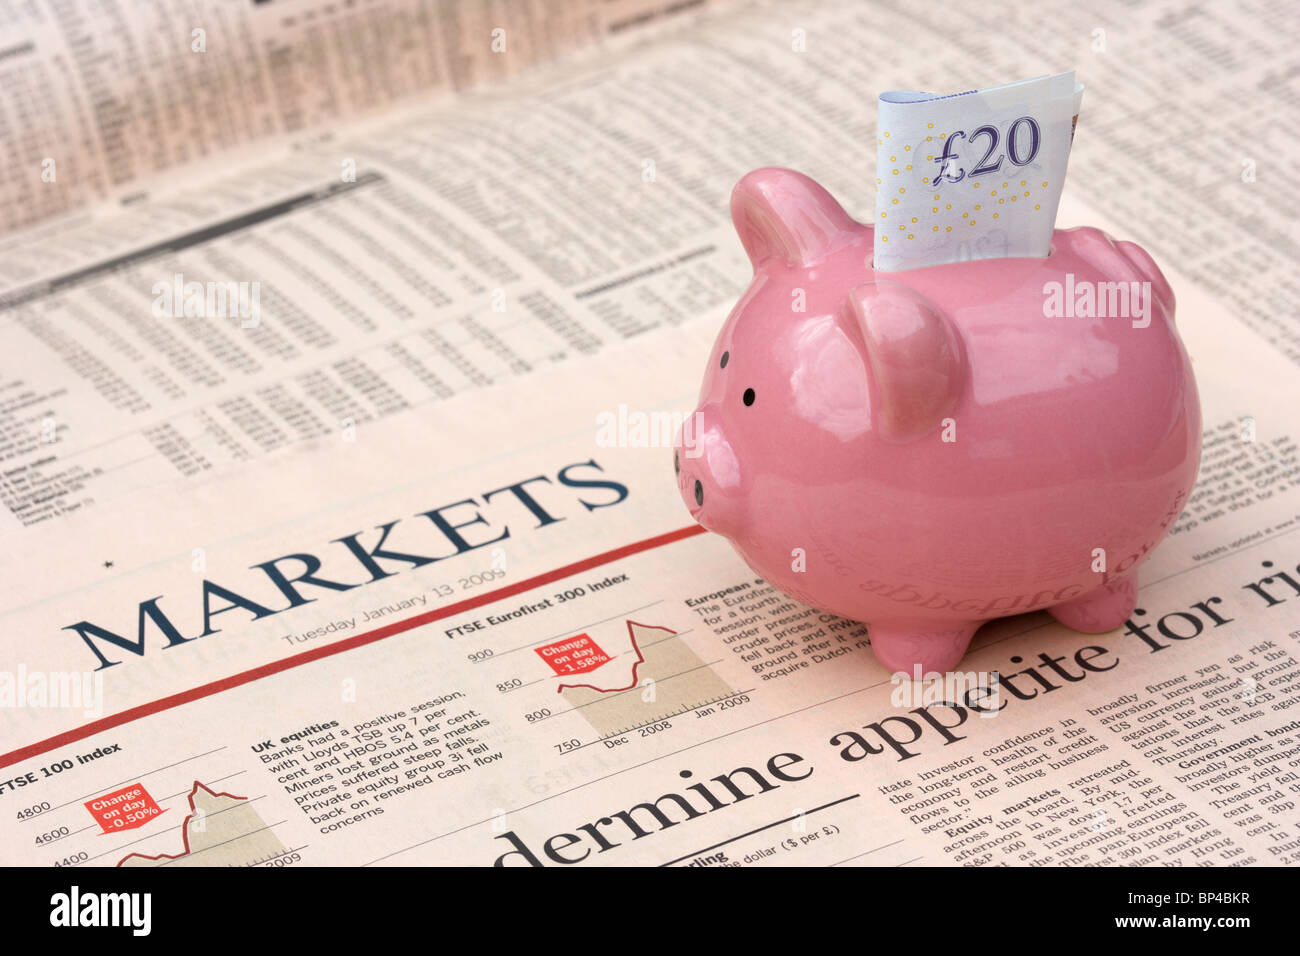 pink piggy bank with 20 pound note sitting on a copy of the financial times newspaper money markets section in the - Stock Image